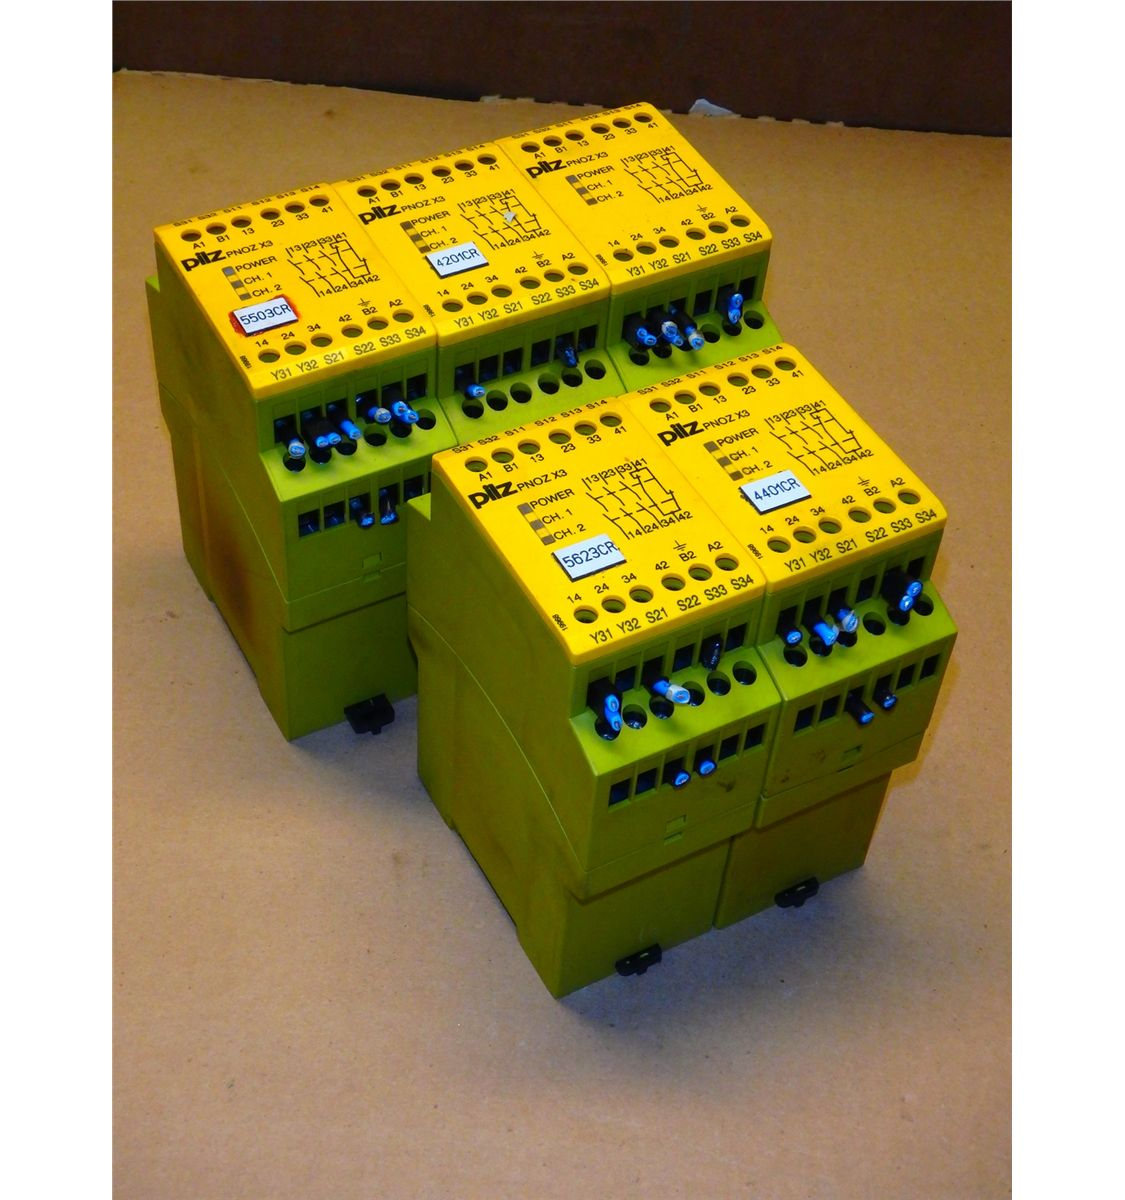 21238097_2?v\=8D1E2A9D186BF90 pilz pnoz x3 safety relay wiring diagram gandul 45 77 79 119 pilz pnoz x3 wiring diagram at readyjetset.co